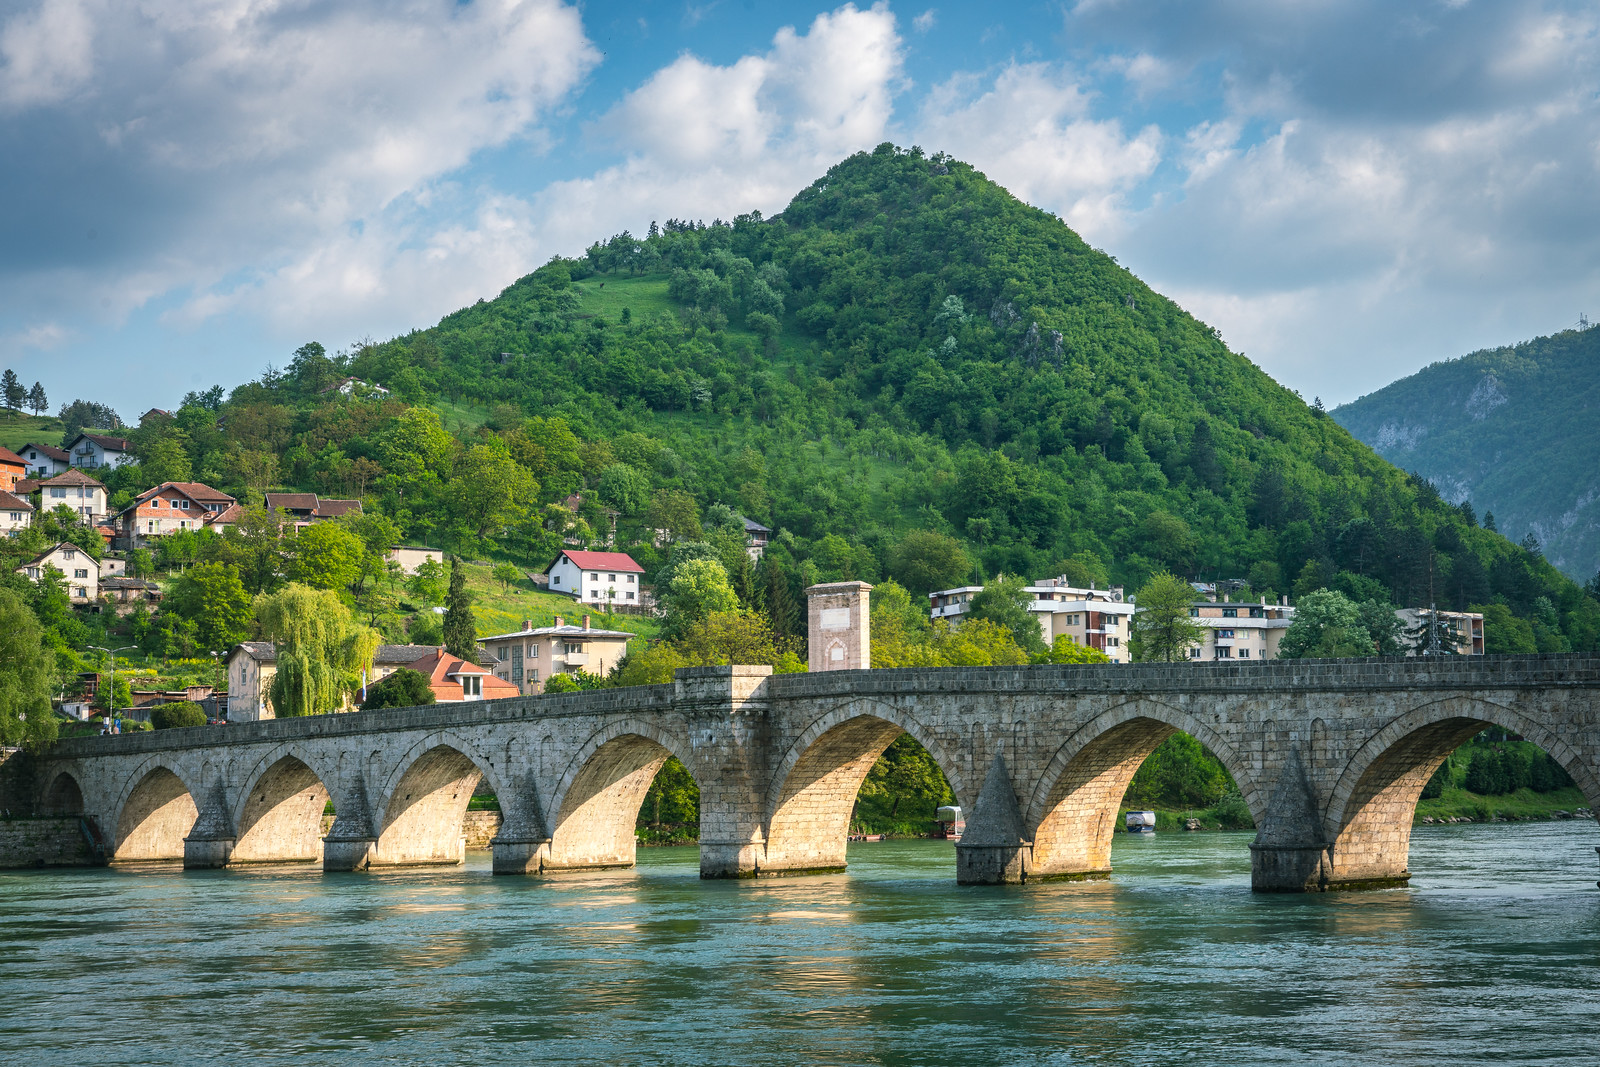 UNESCO World Heritage Site: Mehmed Paša Sokolovic Bridge in Višegrad